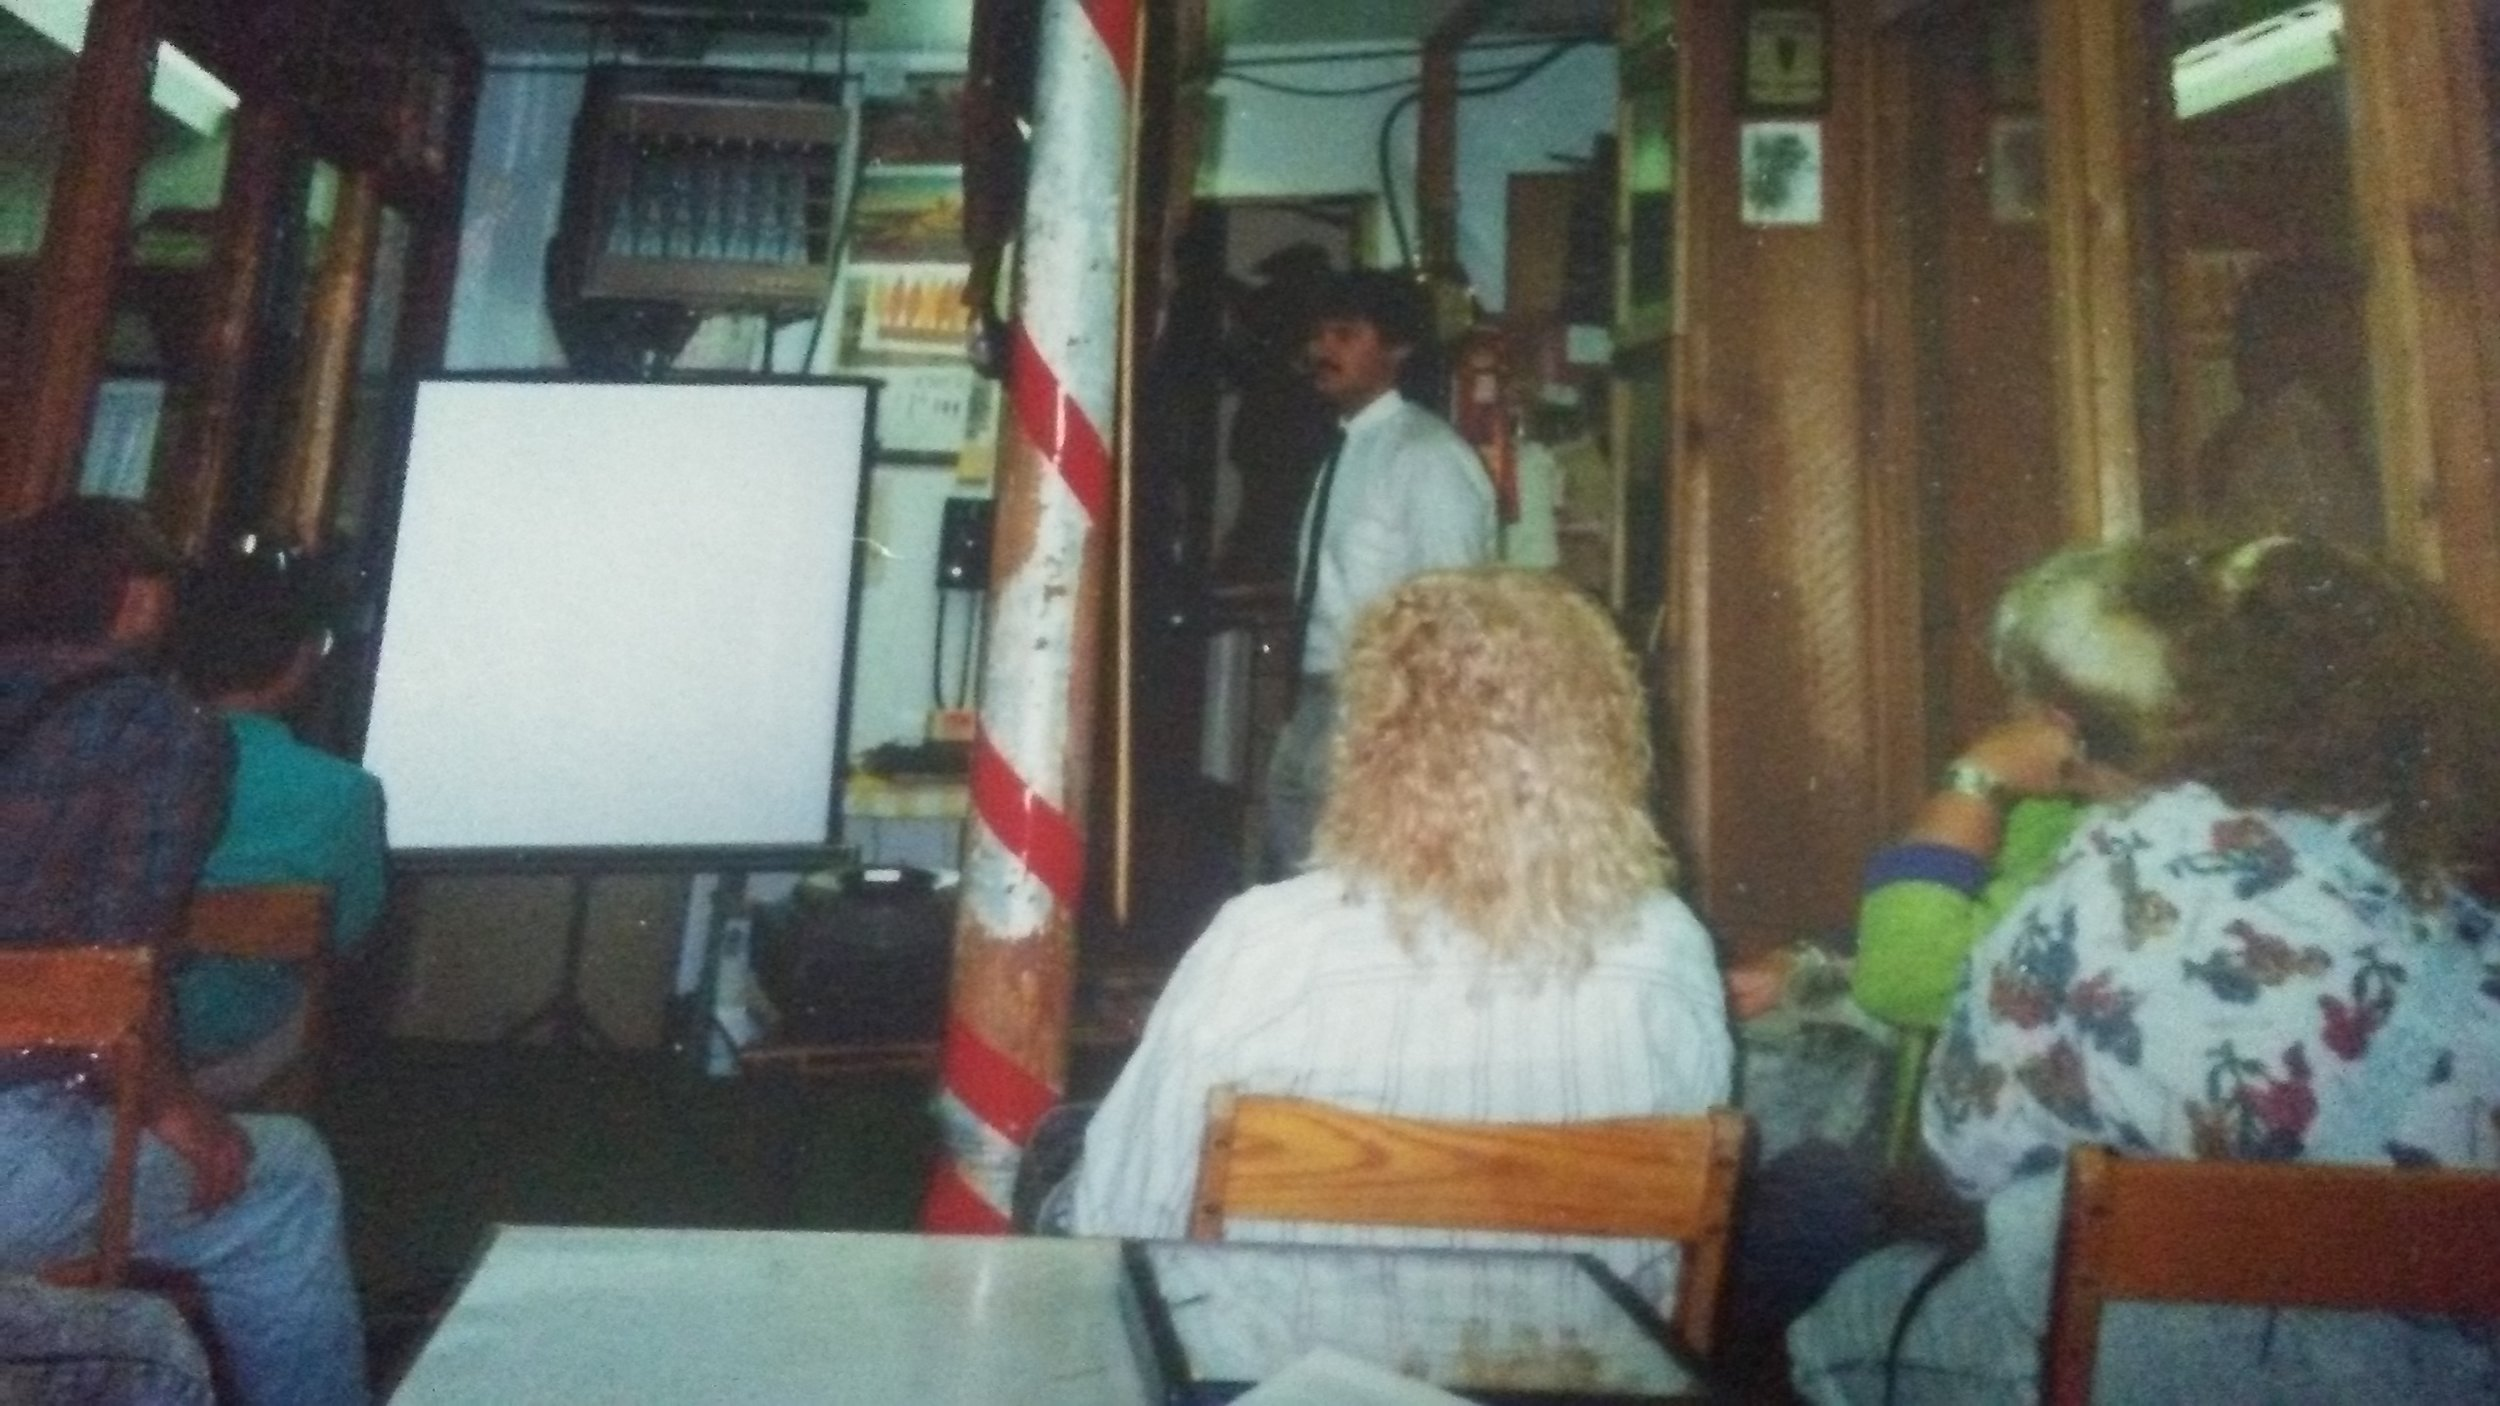 Dr. Tim Abel speaking for a chapter meeting at the former Sandusky Bay Indian Museum in Sandusky, Ohio. 1991